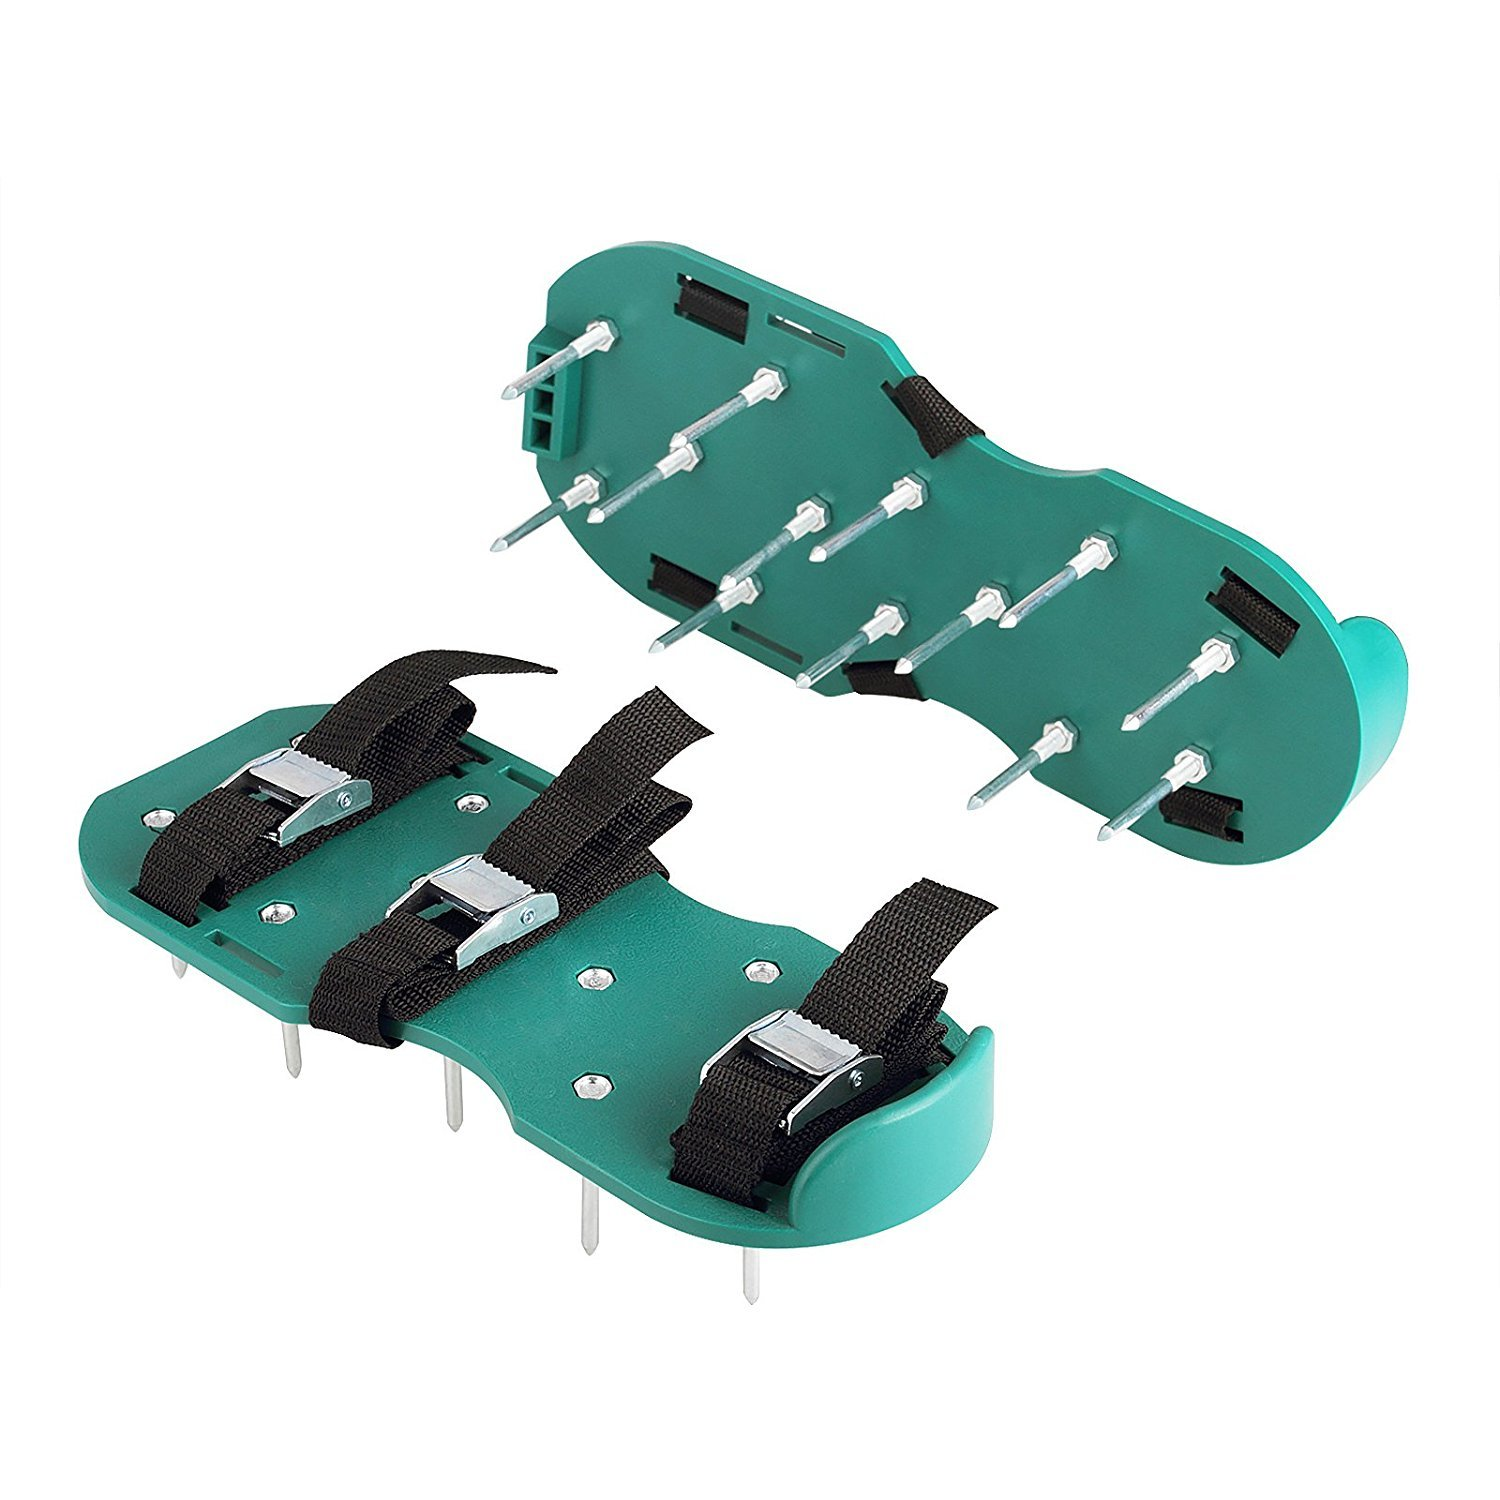 Itian Lawn Aerator Spike Shoes-For Effectively Aerating Lawn Soil-Comes with 3 Adjustable Straps with Metallic Buckles-Universal Size that Fits all-For a Greener and Healthier Garden or Yard